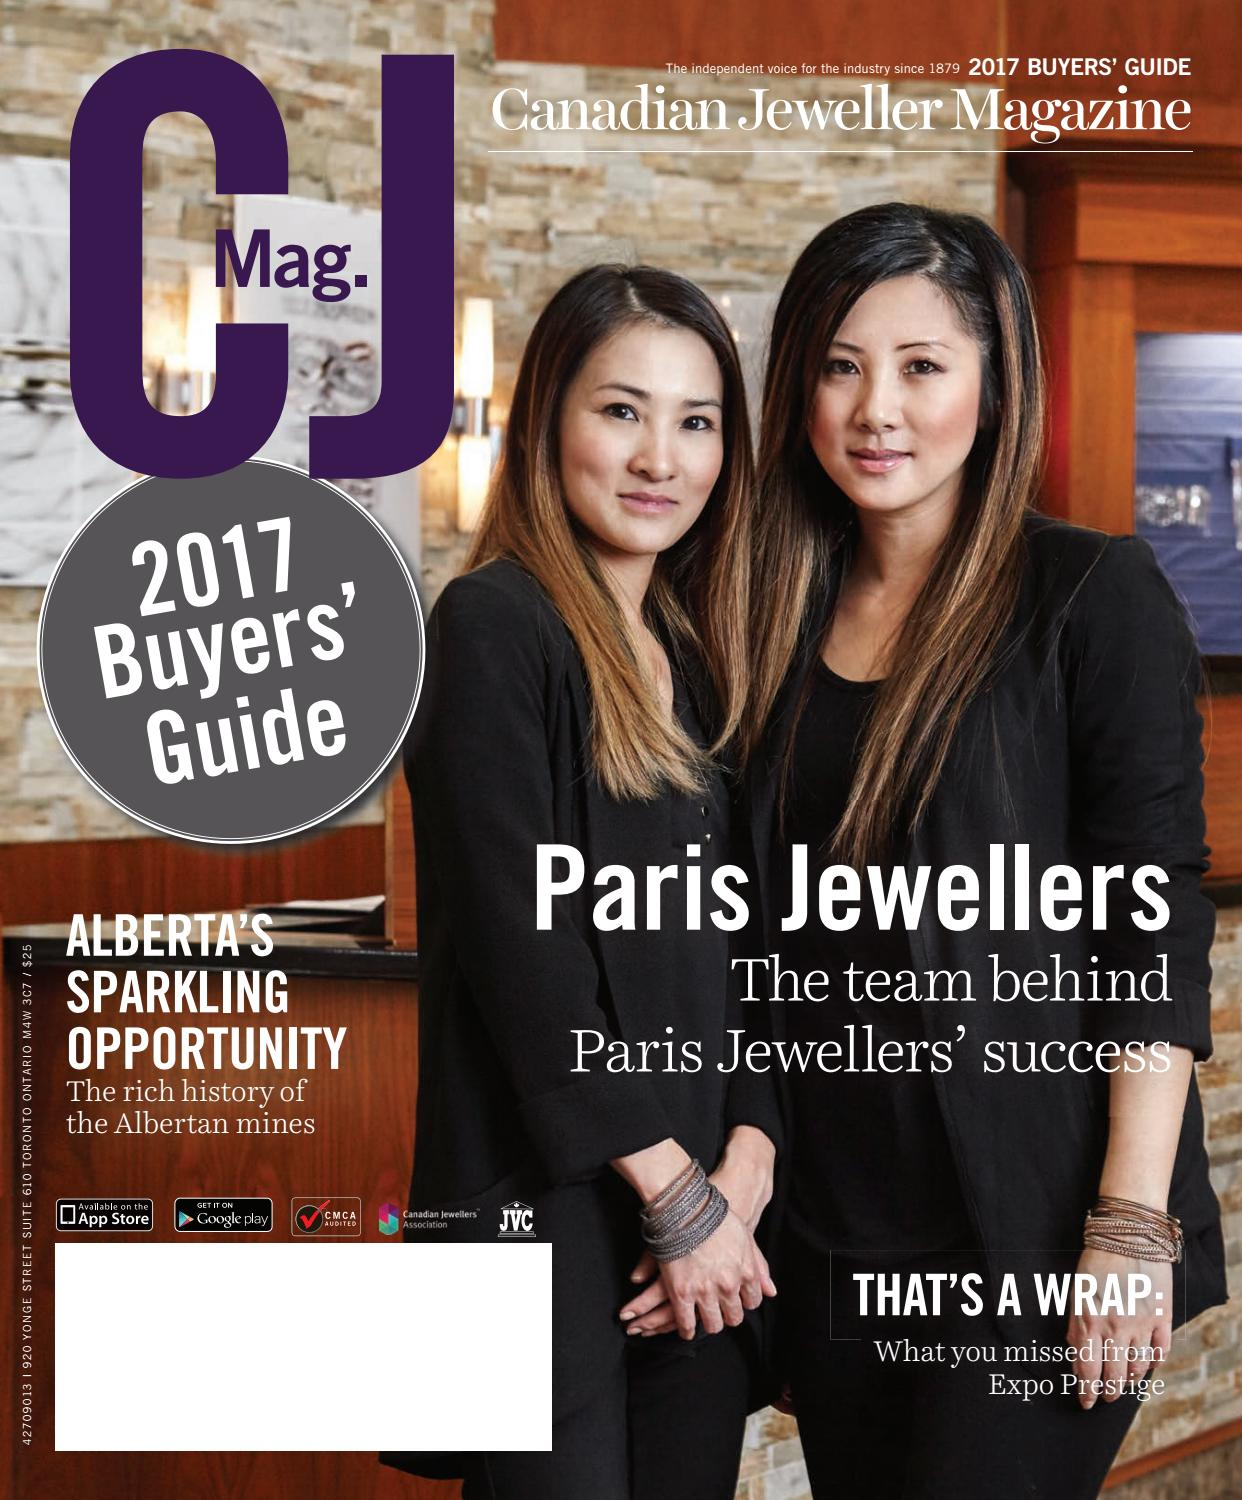 fd857dcfcc93 CJ 2017 Buyers  Guide Preview by Canadian Jeweller Magazine - issuu